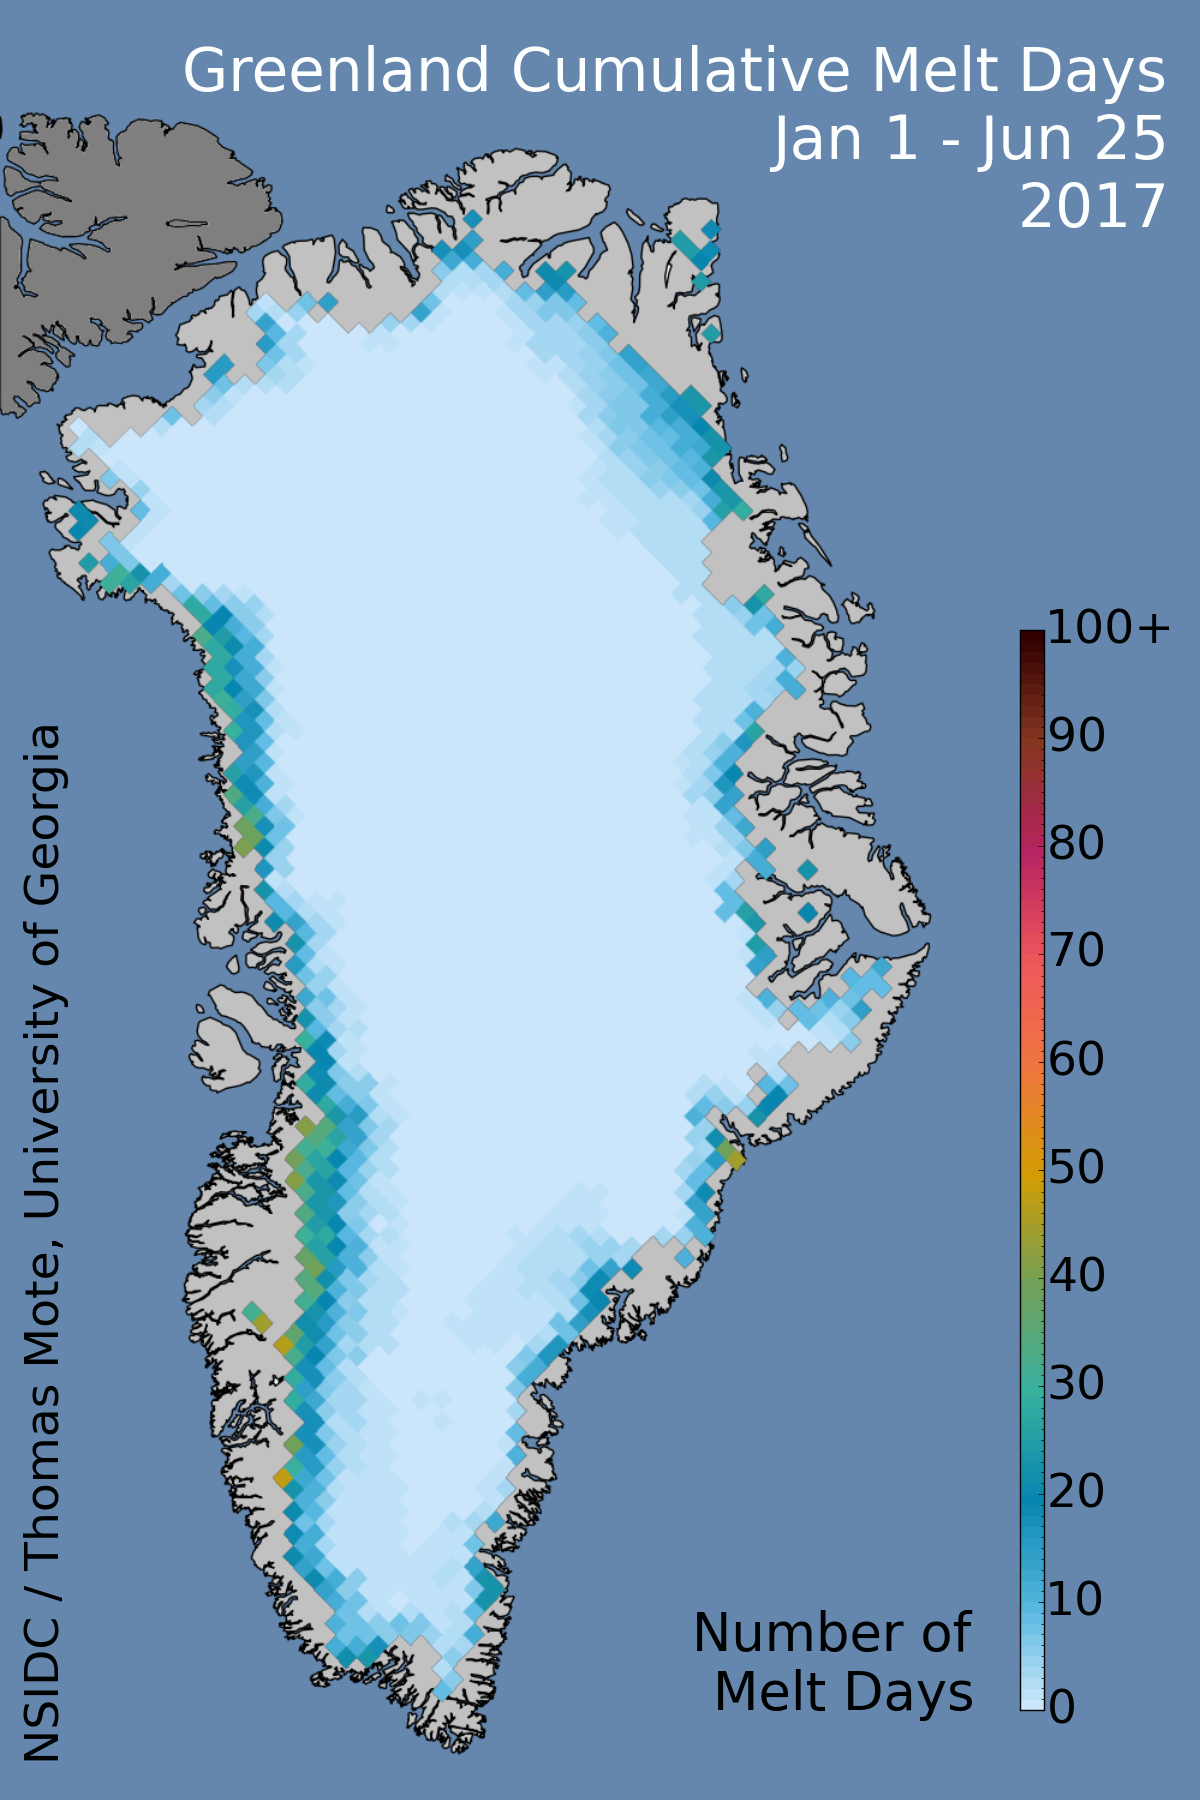 Greenland Cumulative Melt Days as of Today